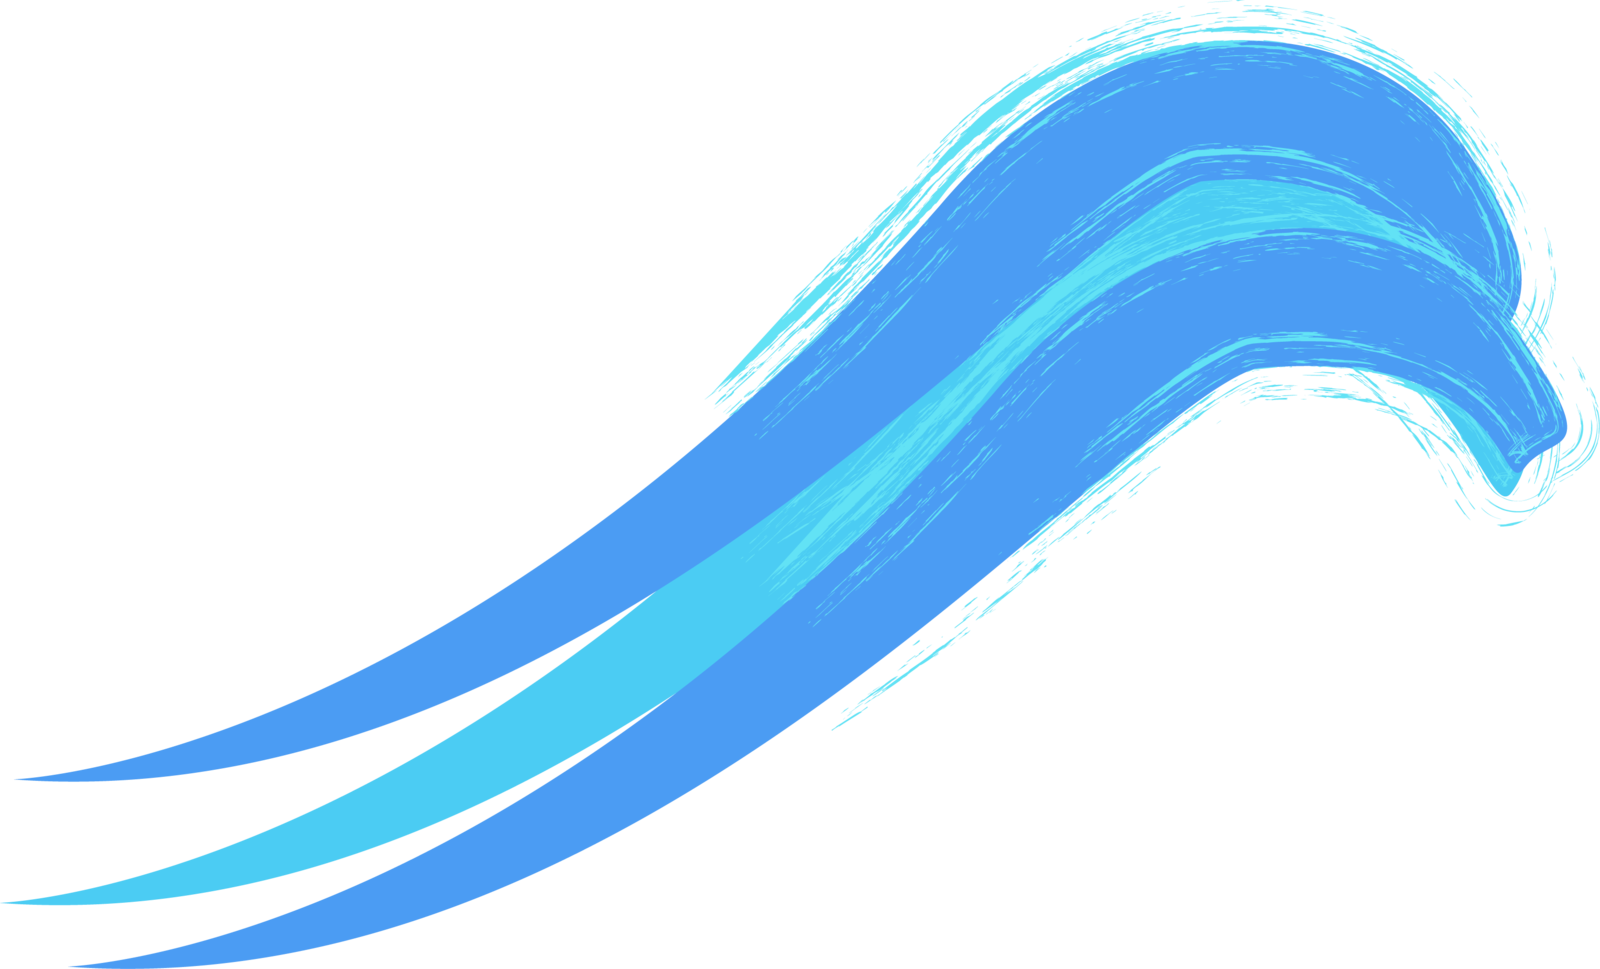 wave vector png